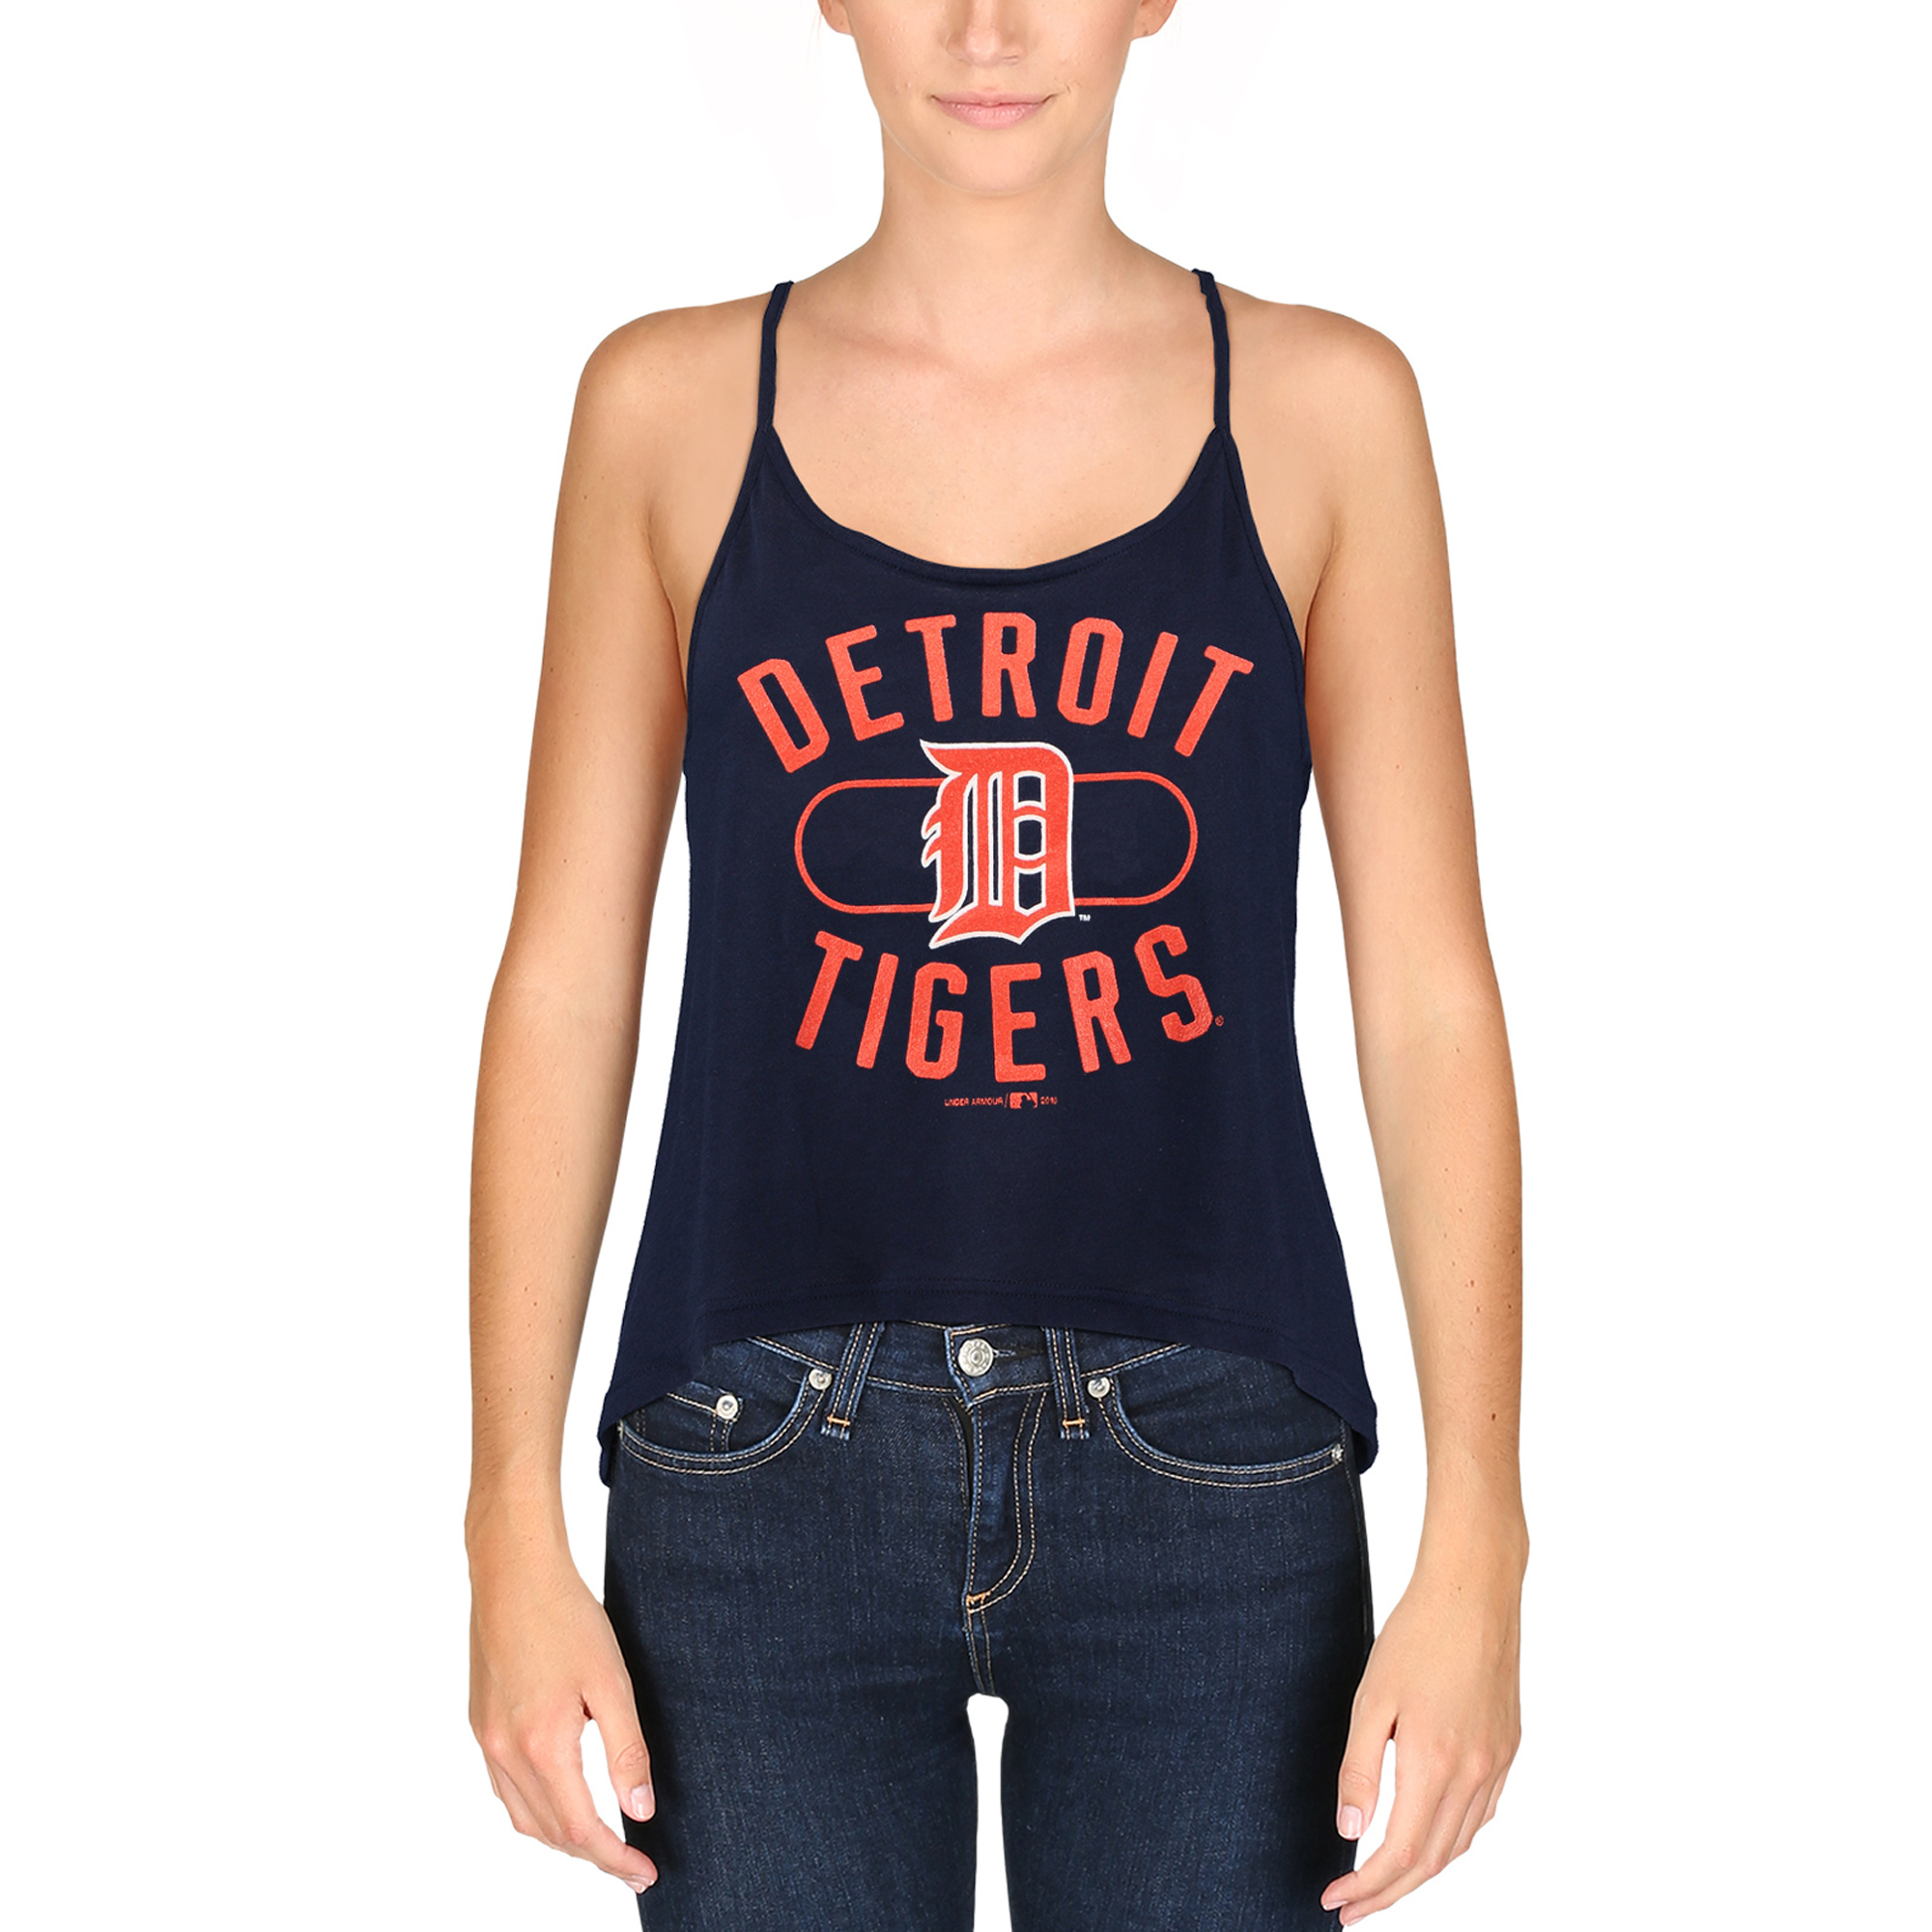 Women's Under Armour Navy Detroit Tigers Performance Strappy Layer Tank Top by